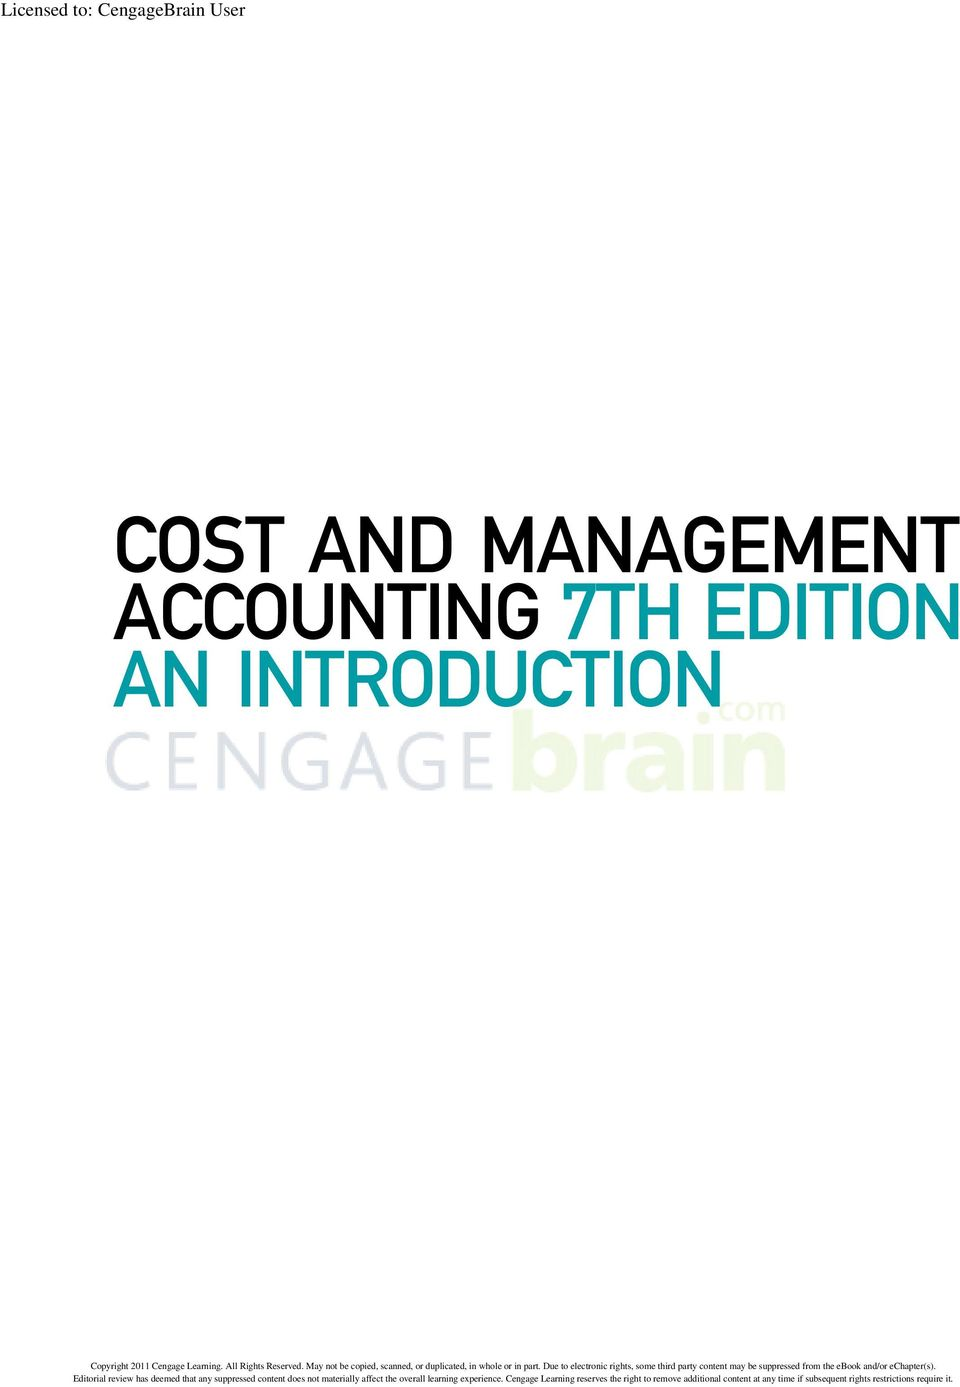 Cost and management accounting 7th edition an introduction pdf accounting 7th fandeluxe Gallery